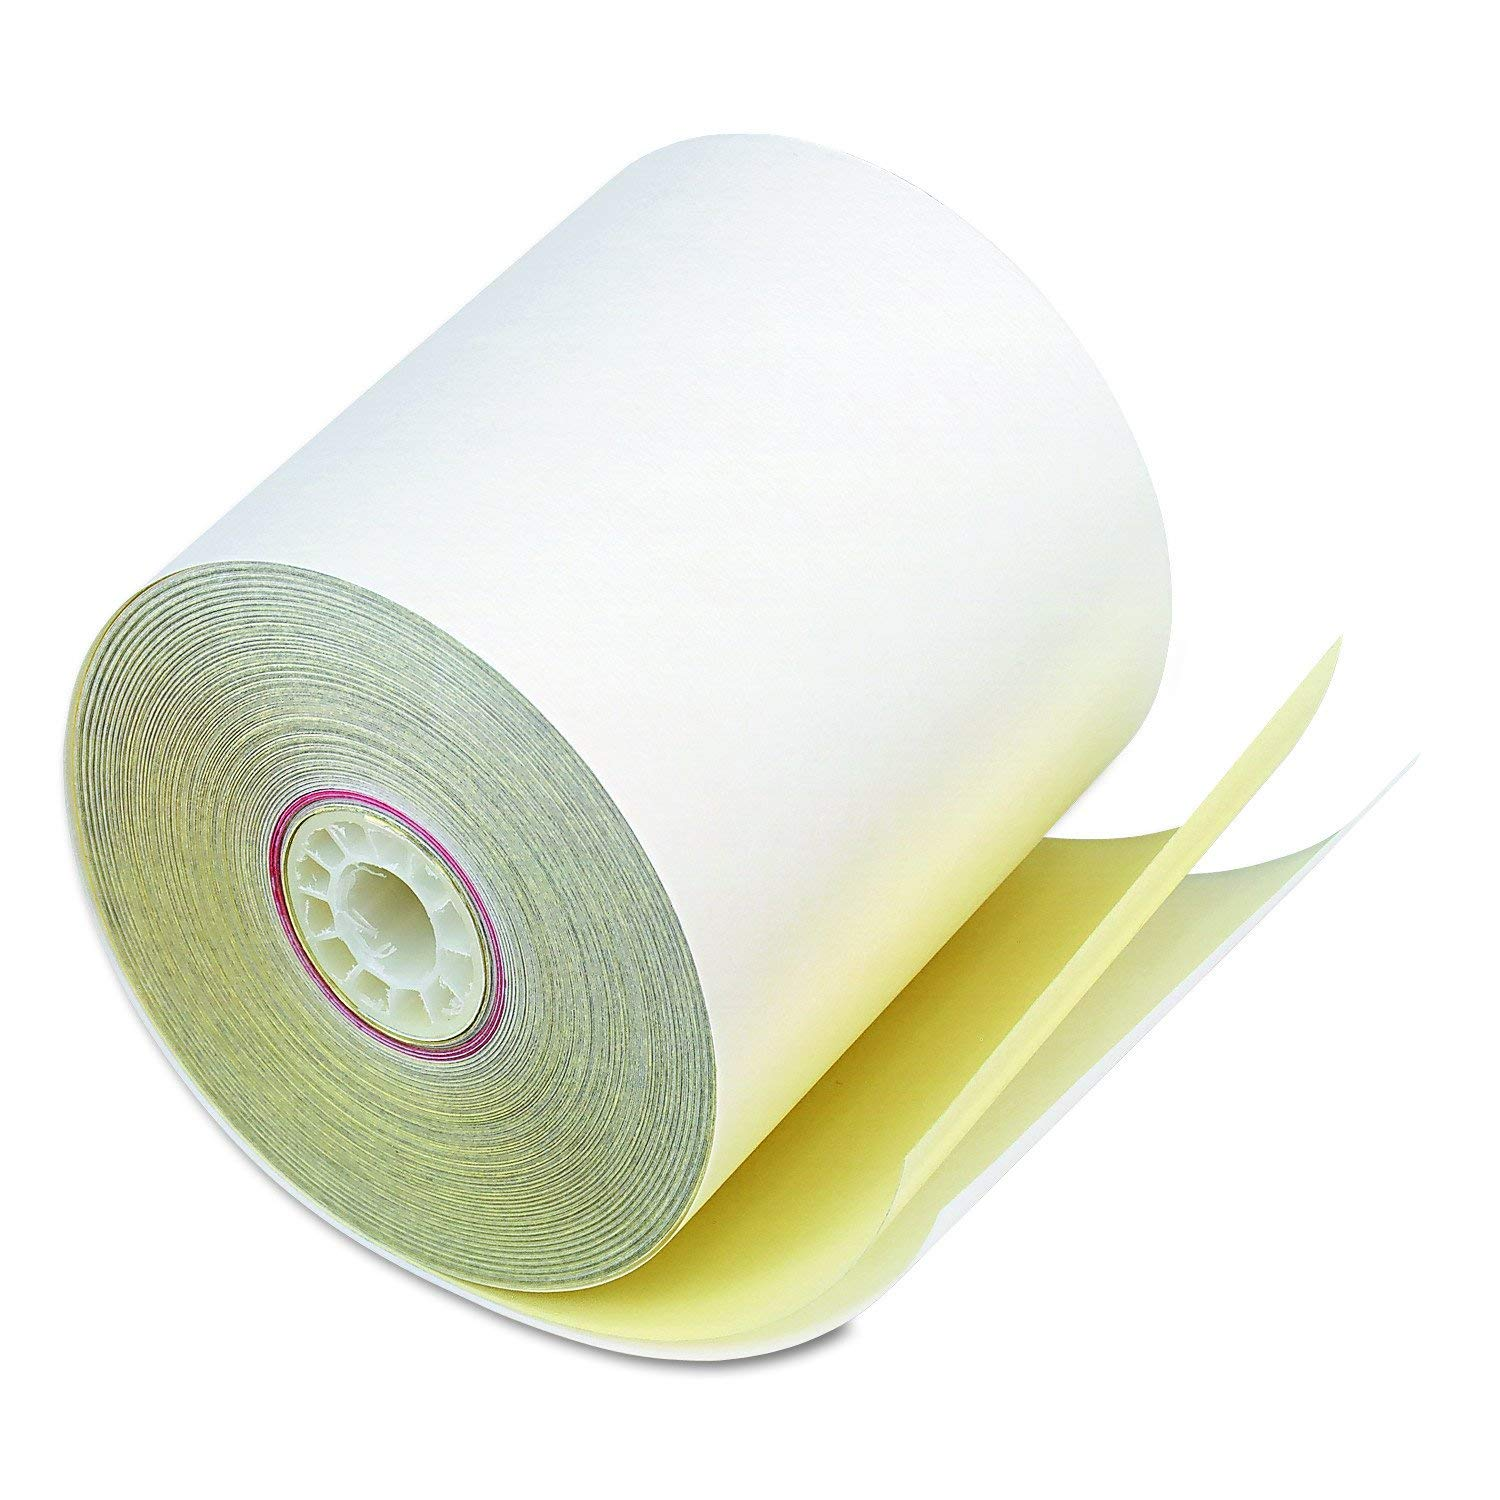 PM Company 07706 Carbonless Duplicate Cash Register Rolls, 3'' X 90', White/Canary, 50 Rolls/ctn (2-Pack)